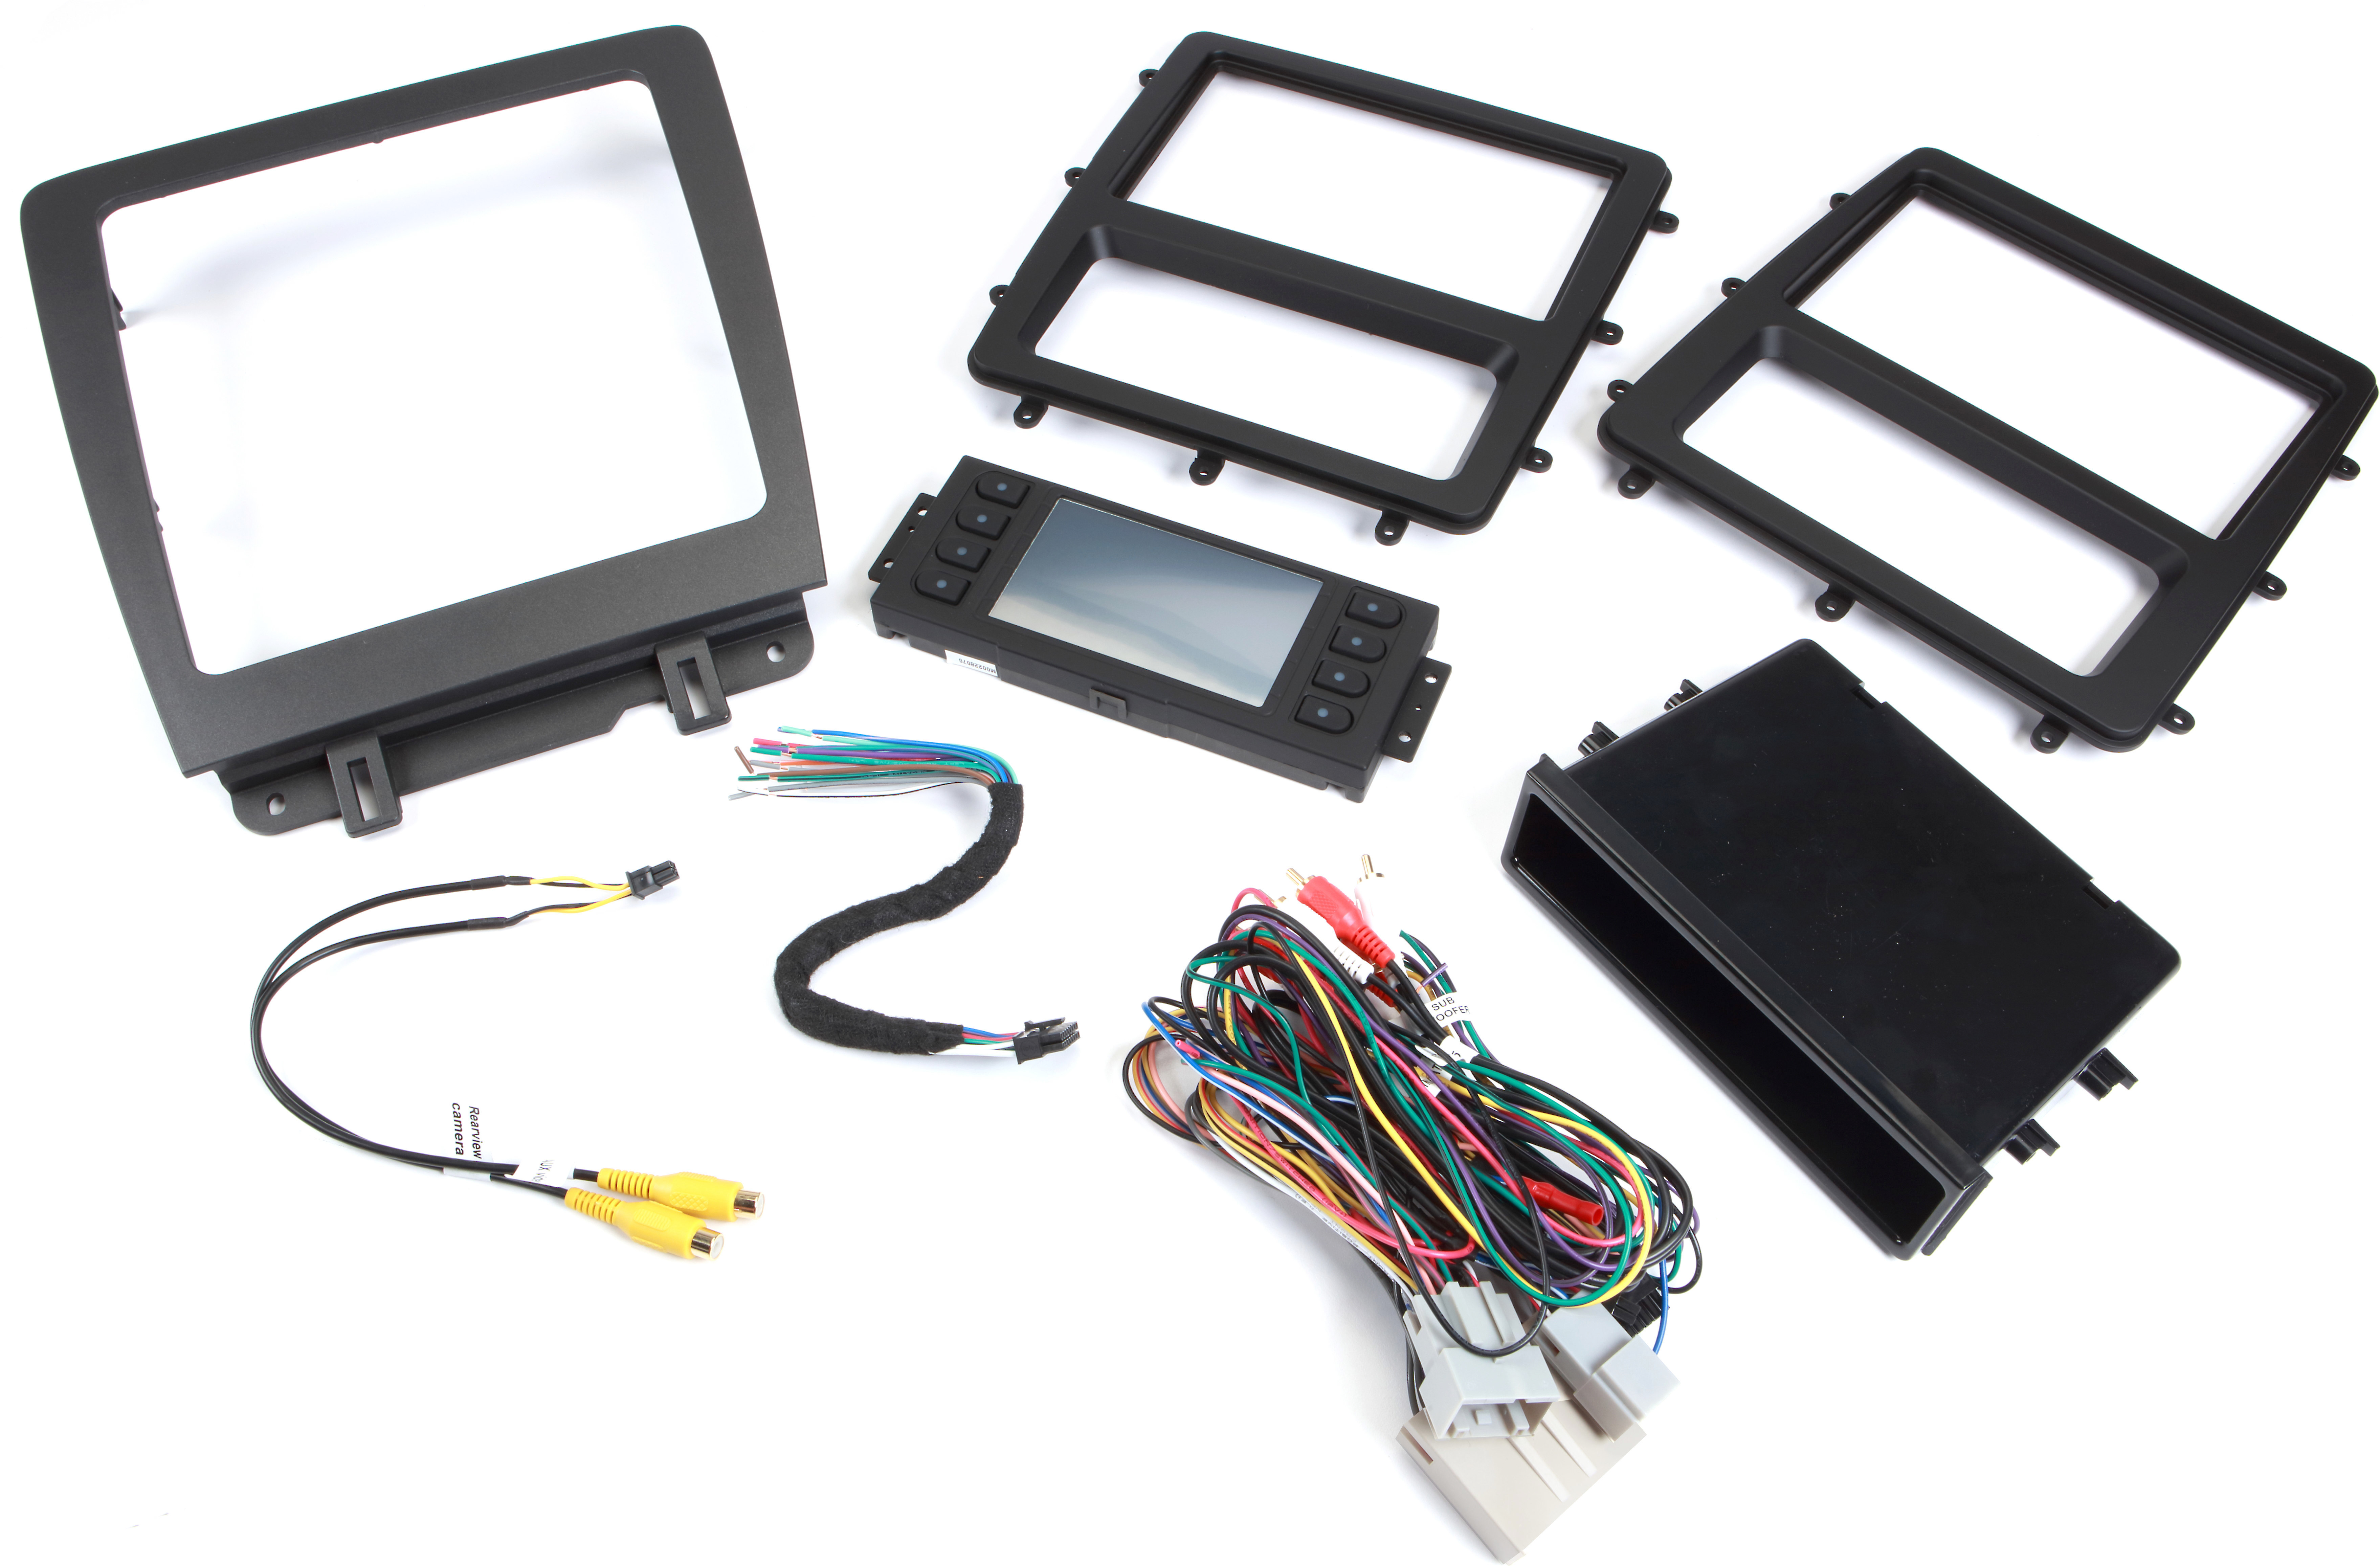 Metra 99-5839CH Dash and Wiring Kit (Gray/Black) Install and connect on